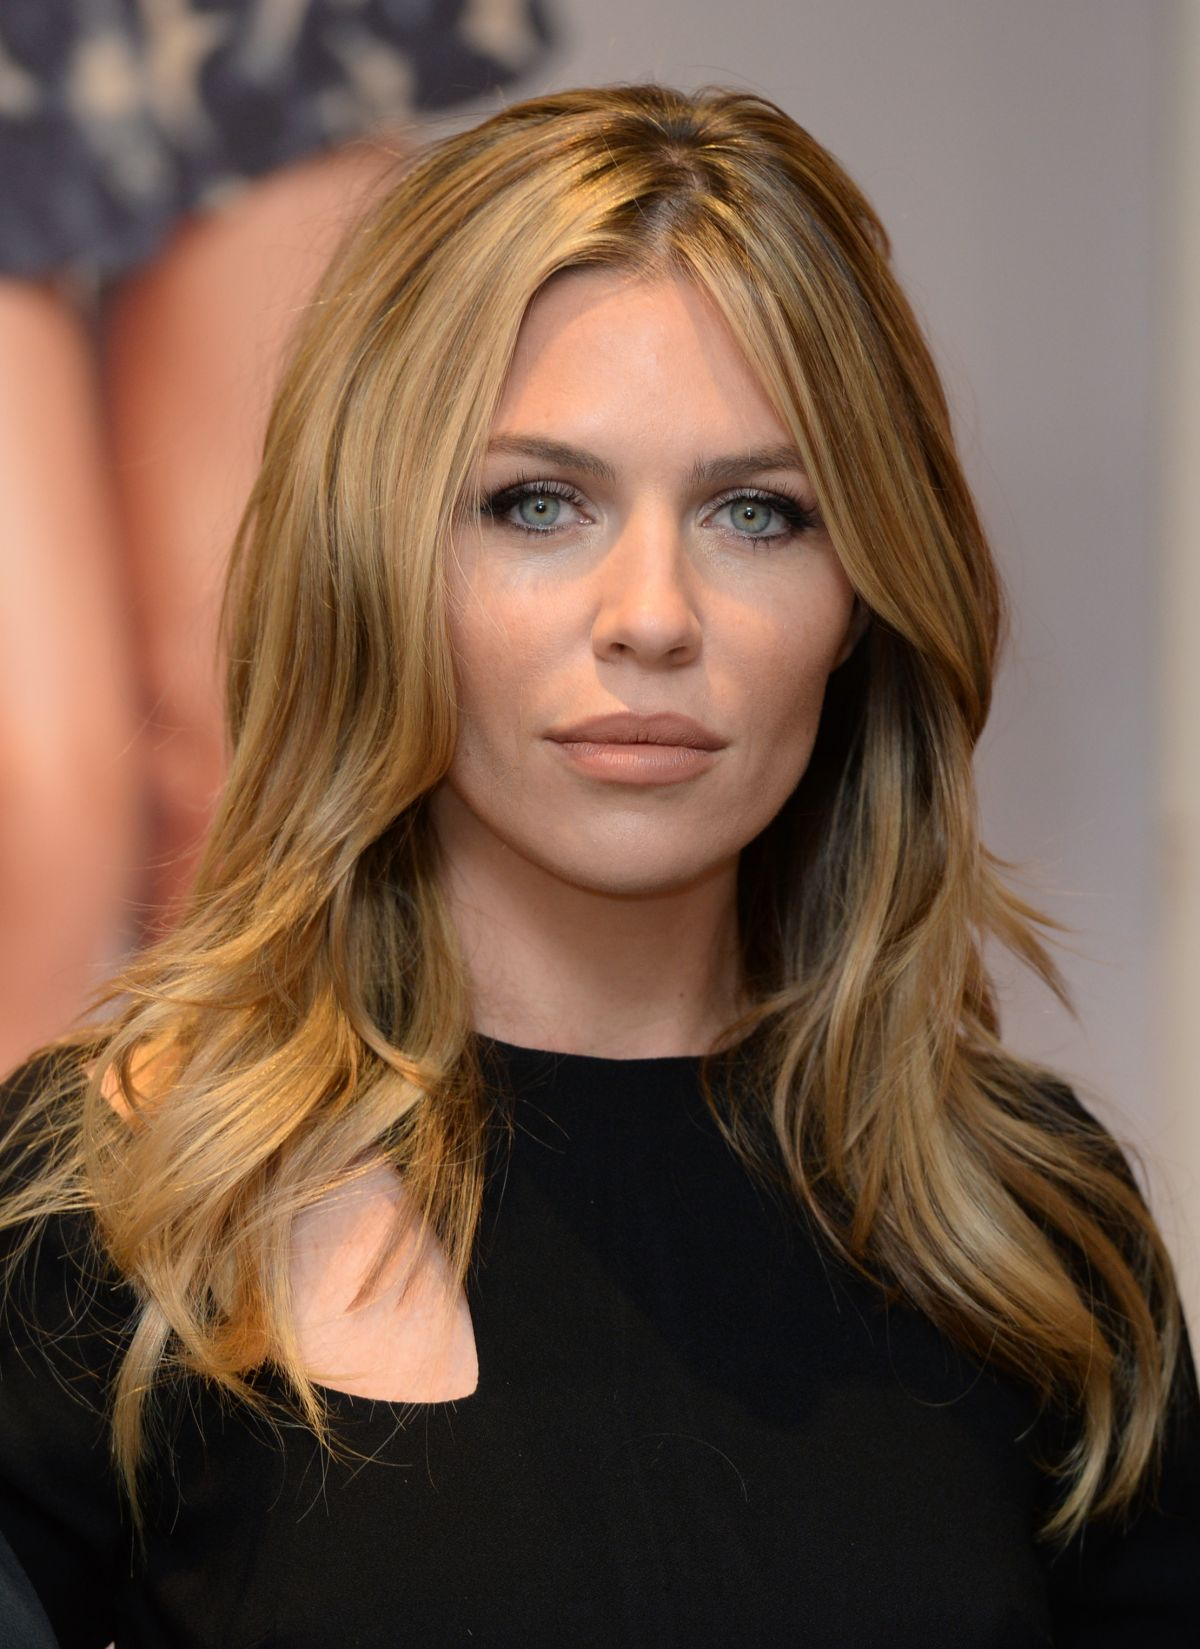 Foto Abbey Clancy nudes (11 photo), Ass, Fappening, Twitter, braless 2015